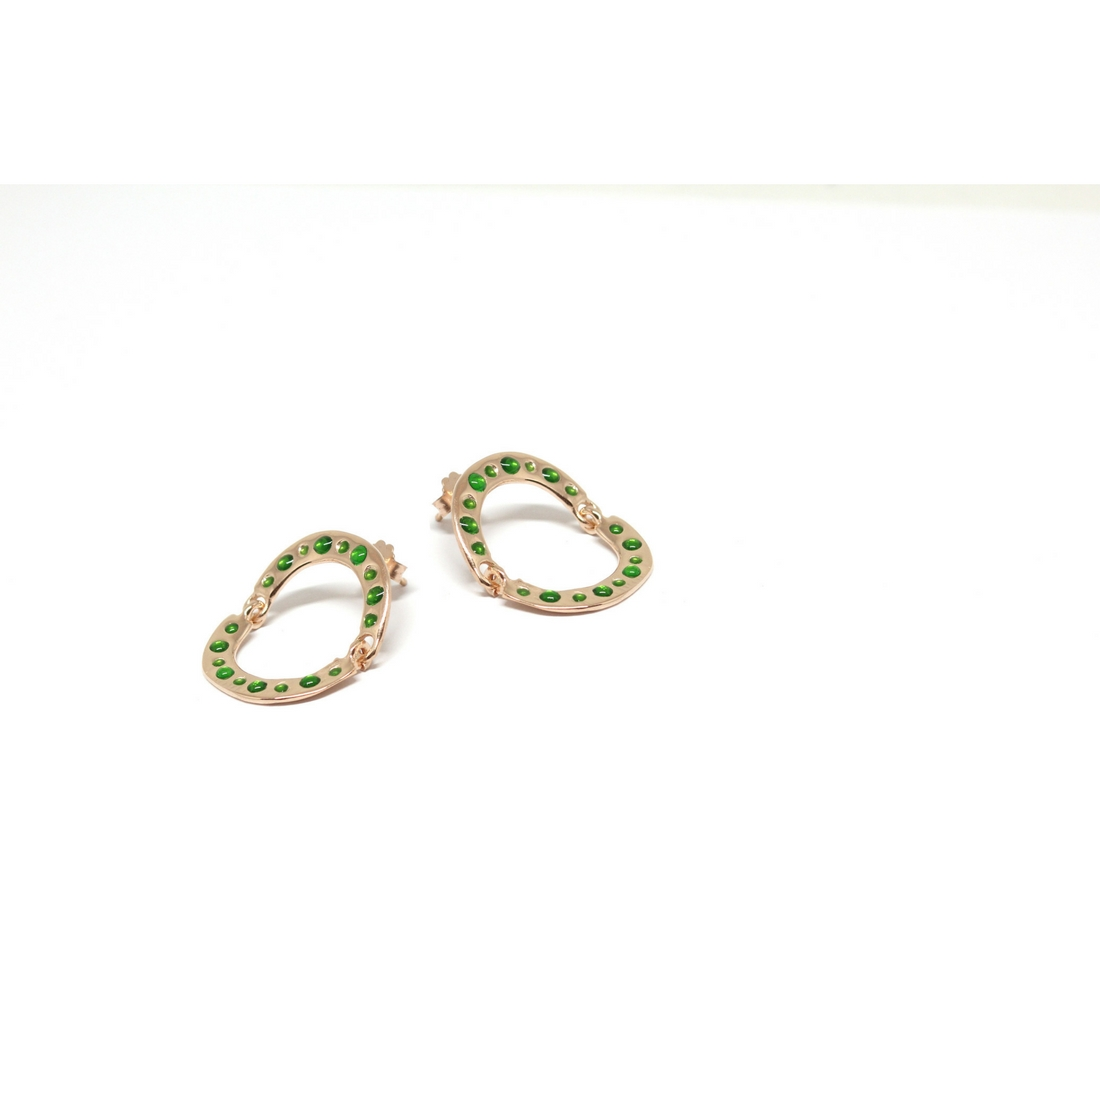 Turn Around Earrings Rose Gold and Green Enamels Crafted with love